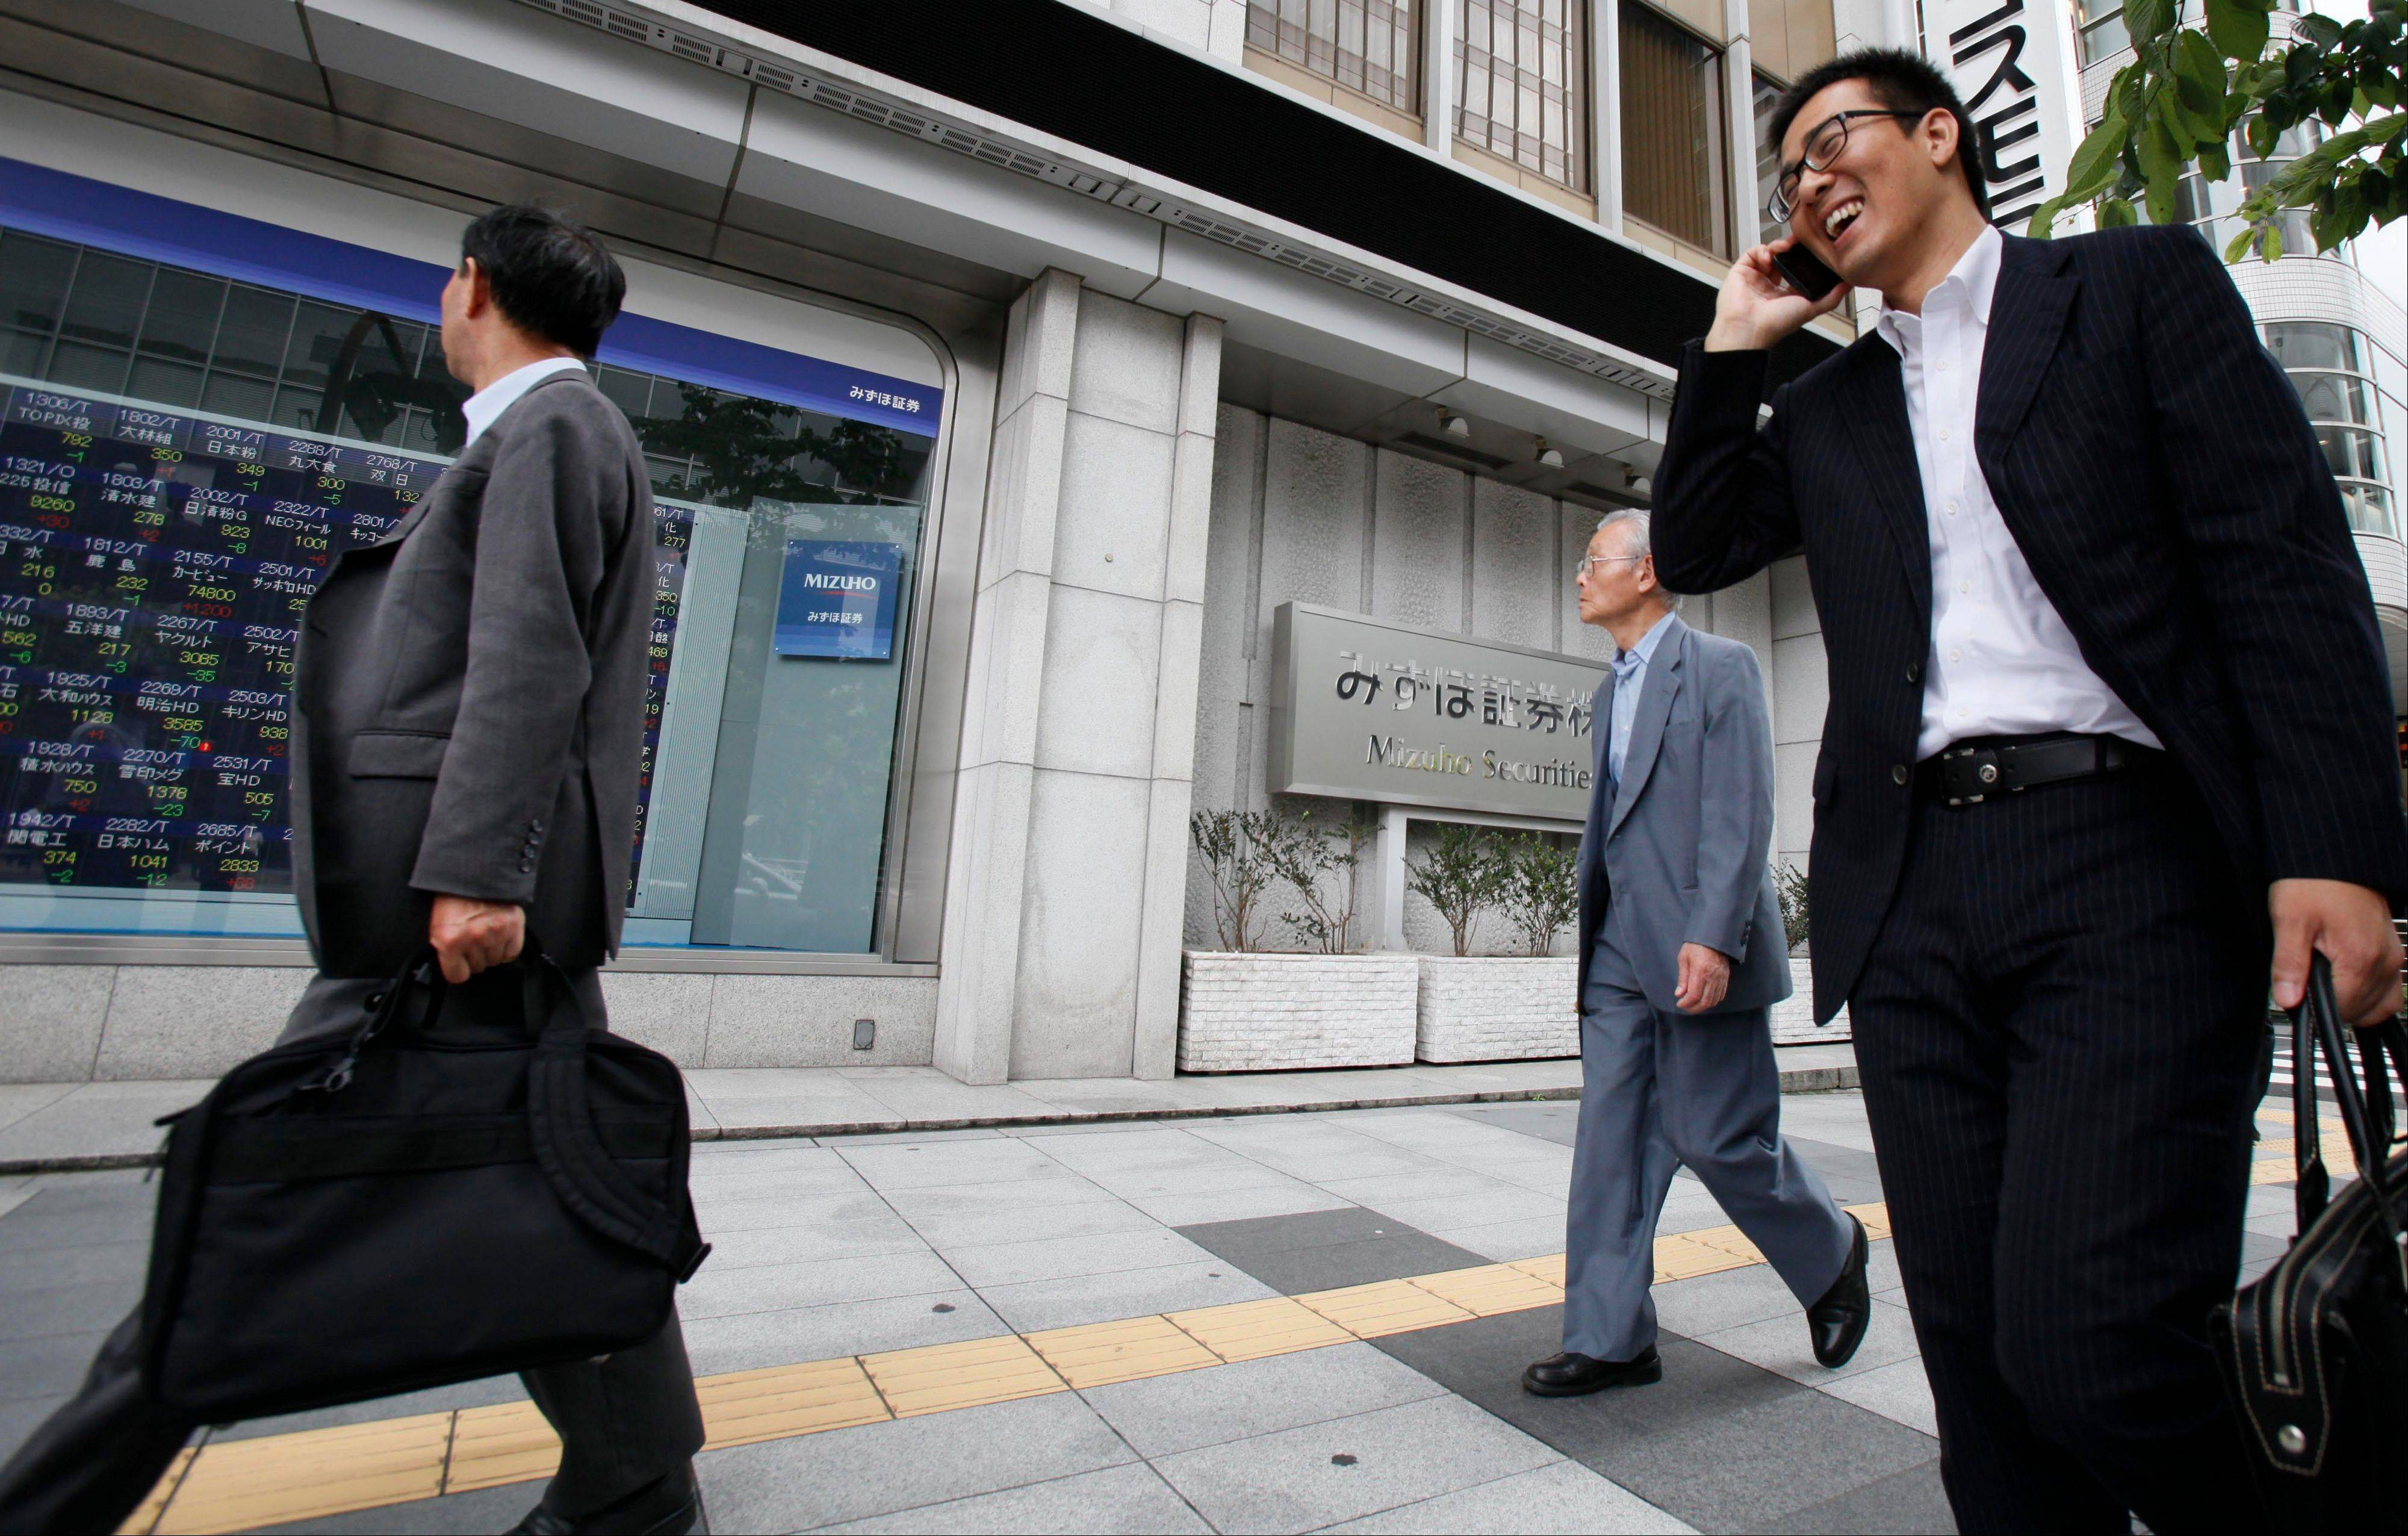 People walk past a digital display of Tokyo stock prices at a securities firm in Tokyo Monday.